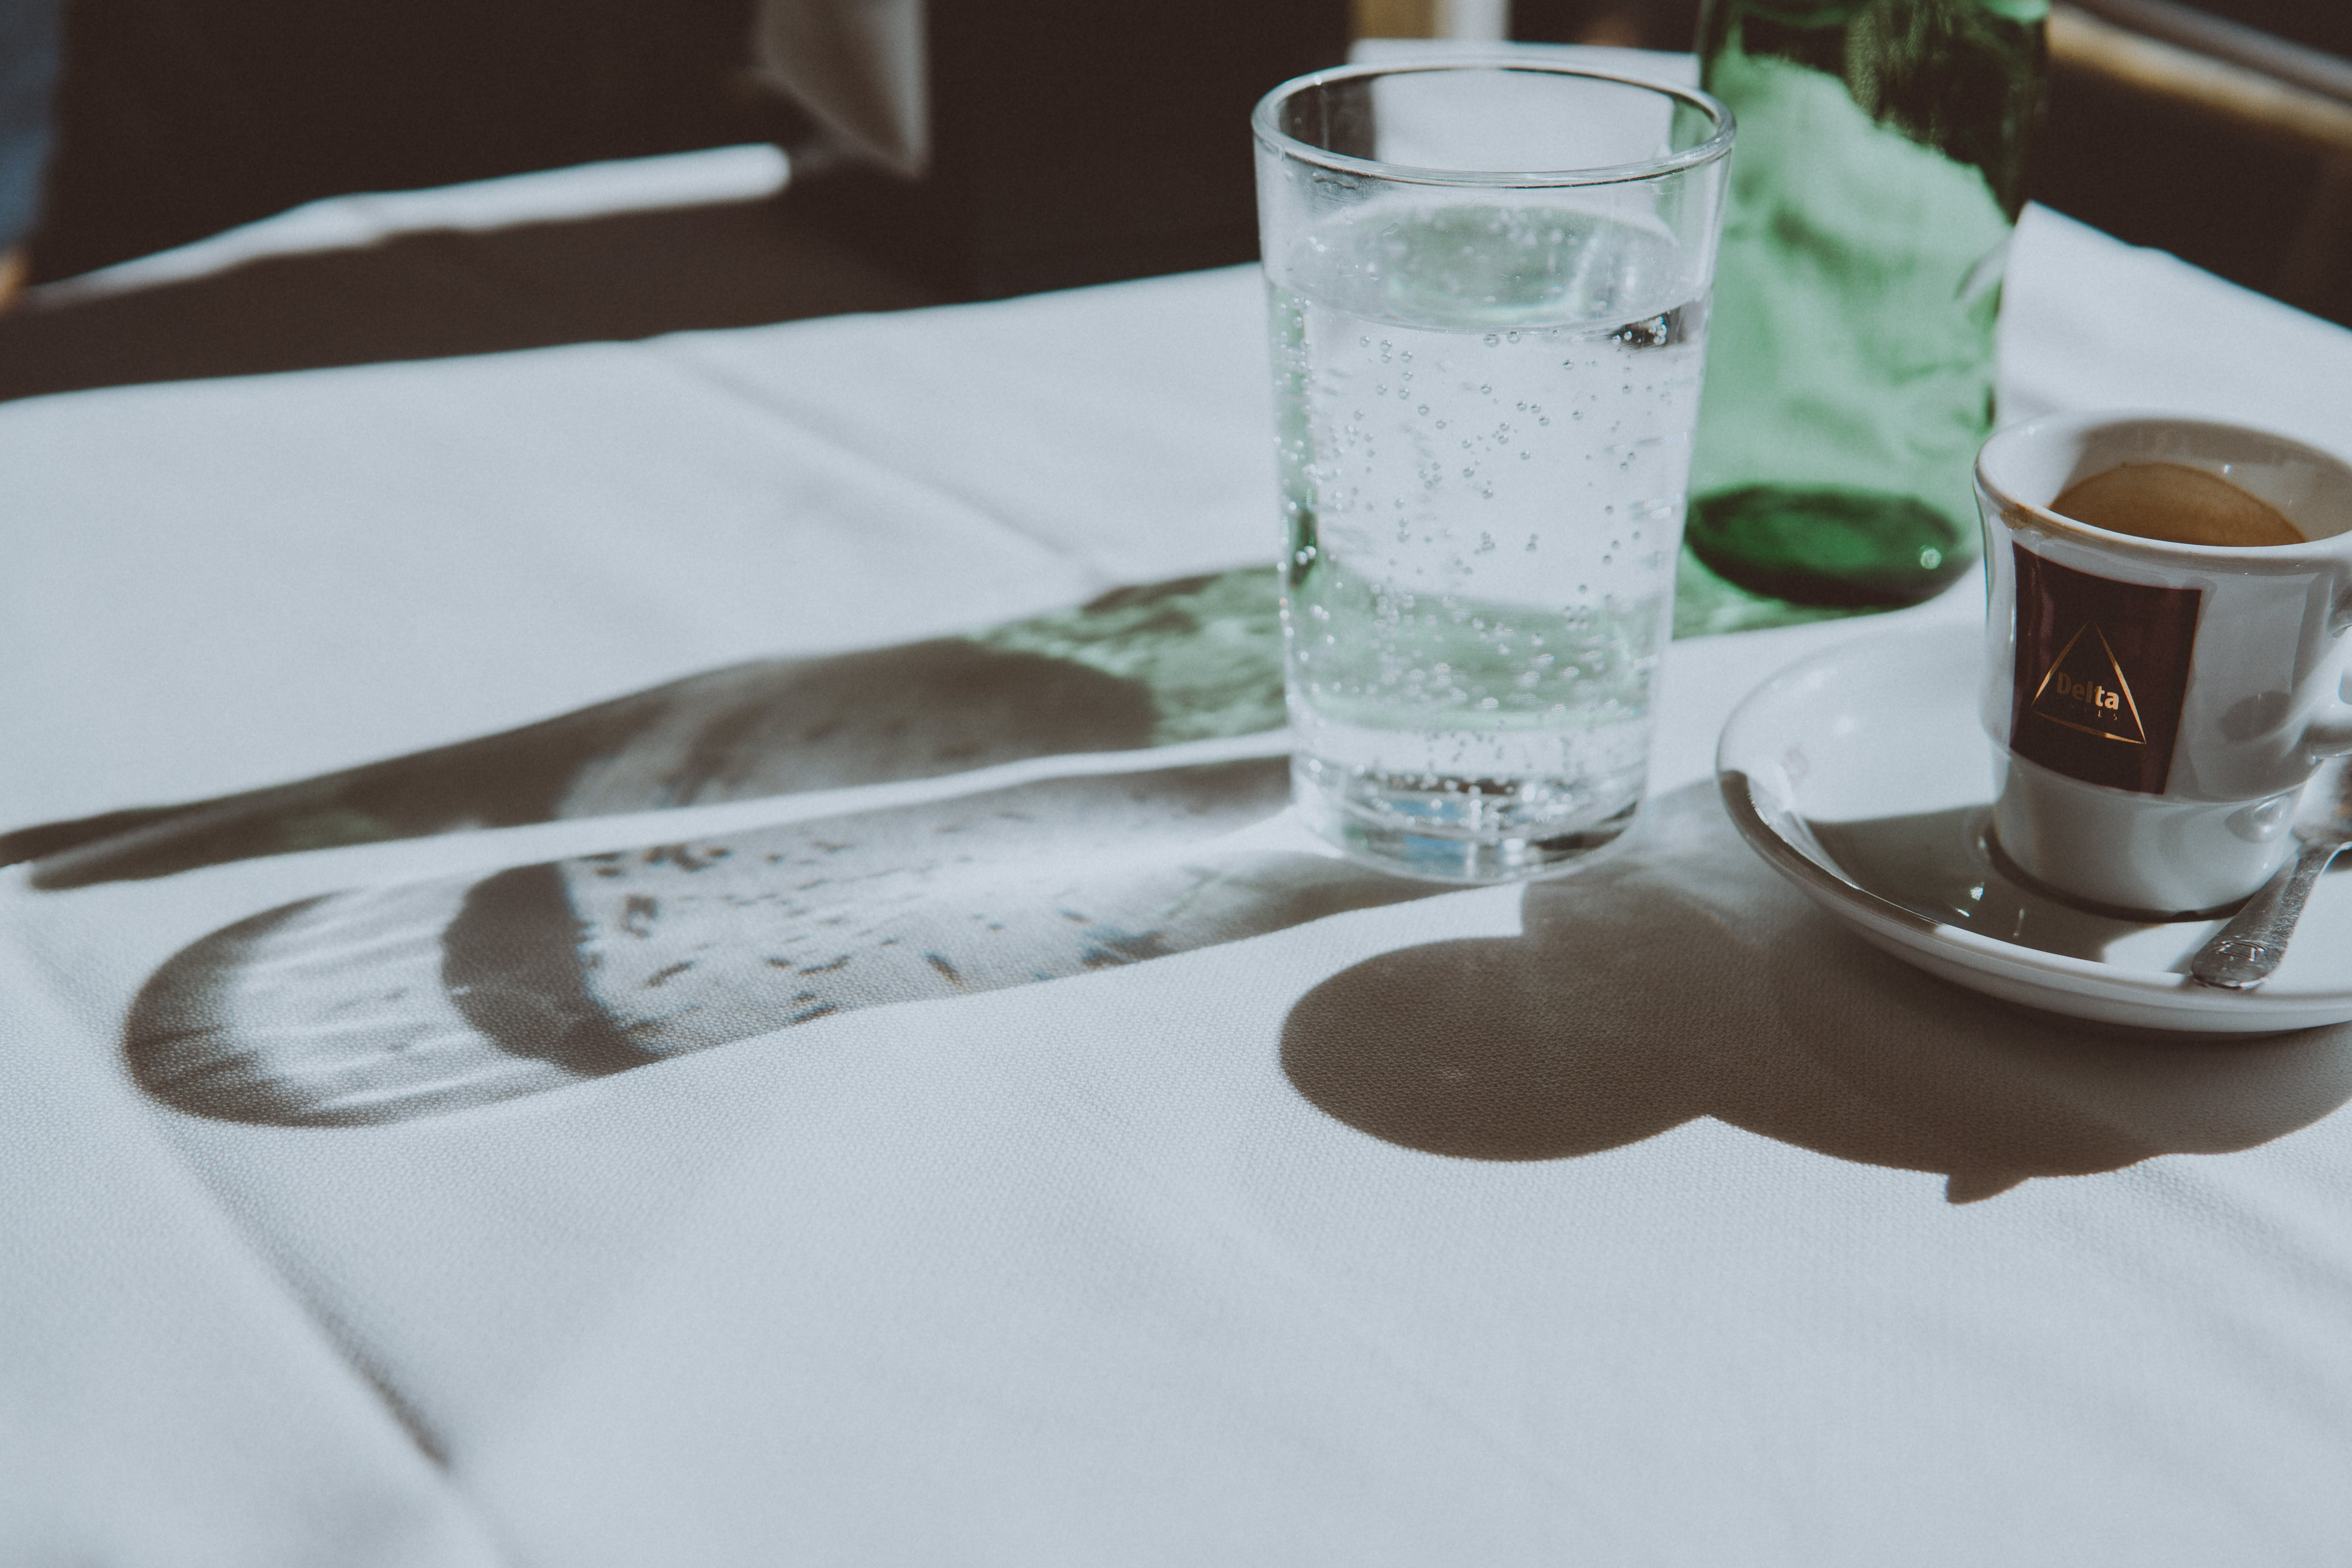 Clear Drinking Glass Beside Teacup